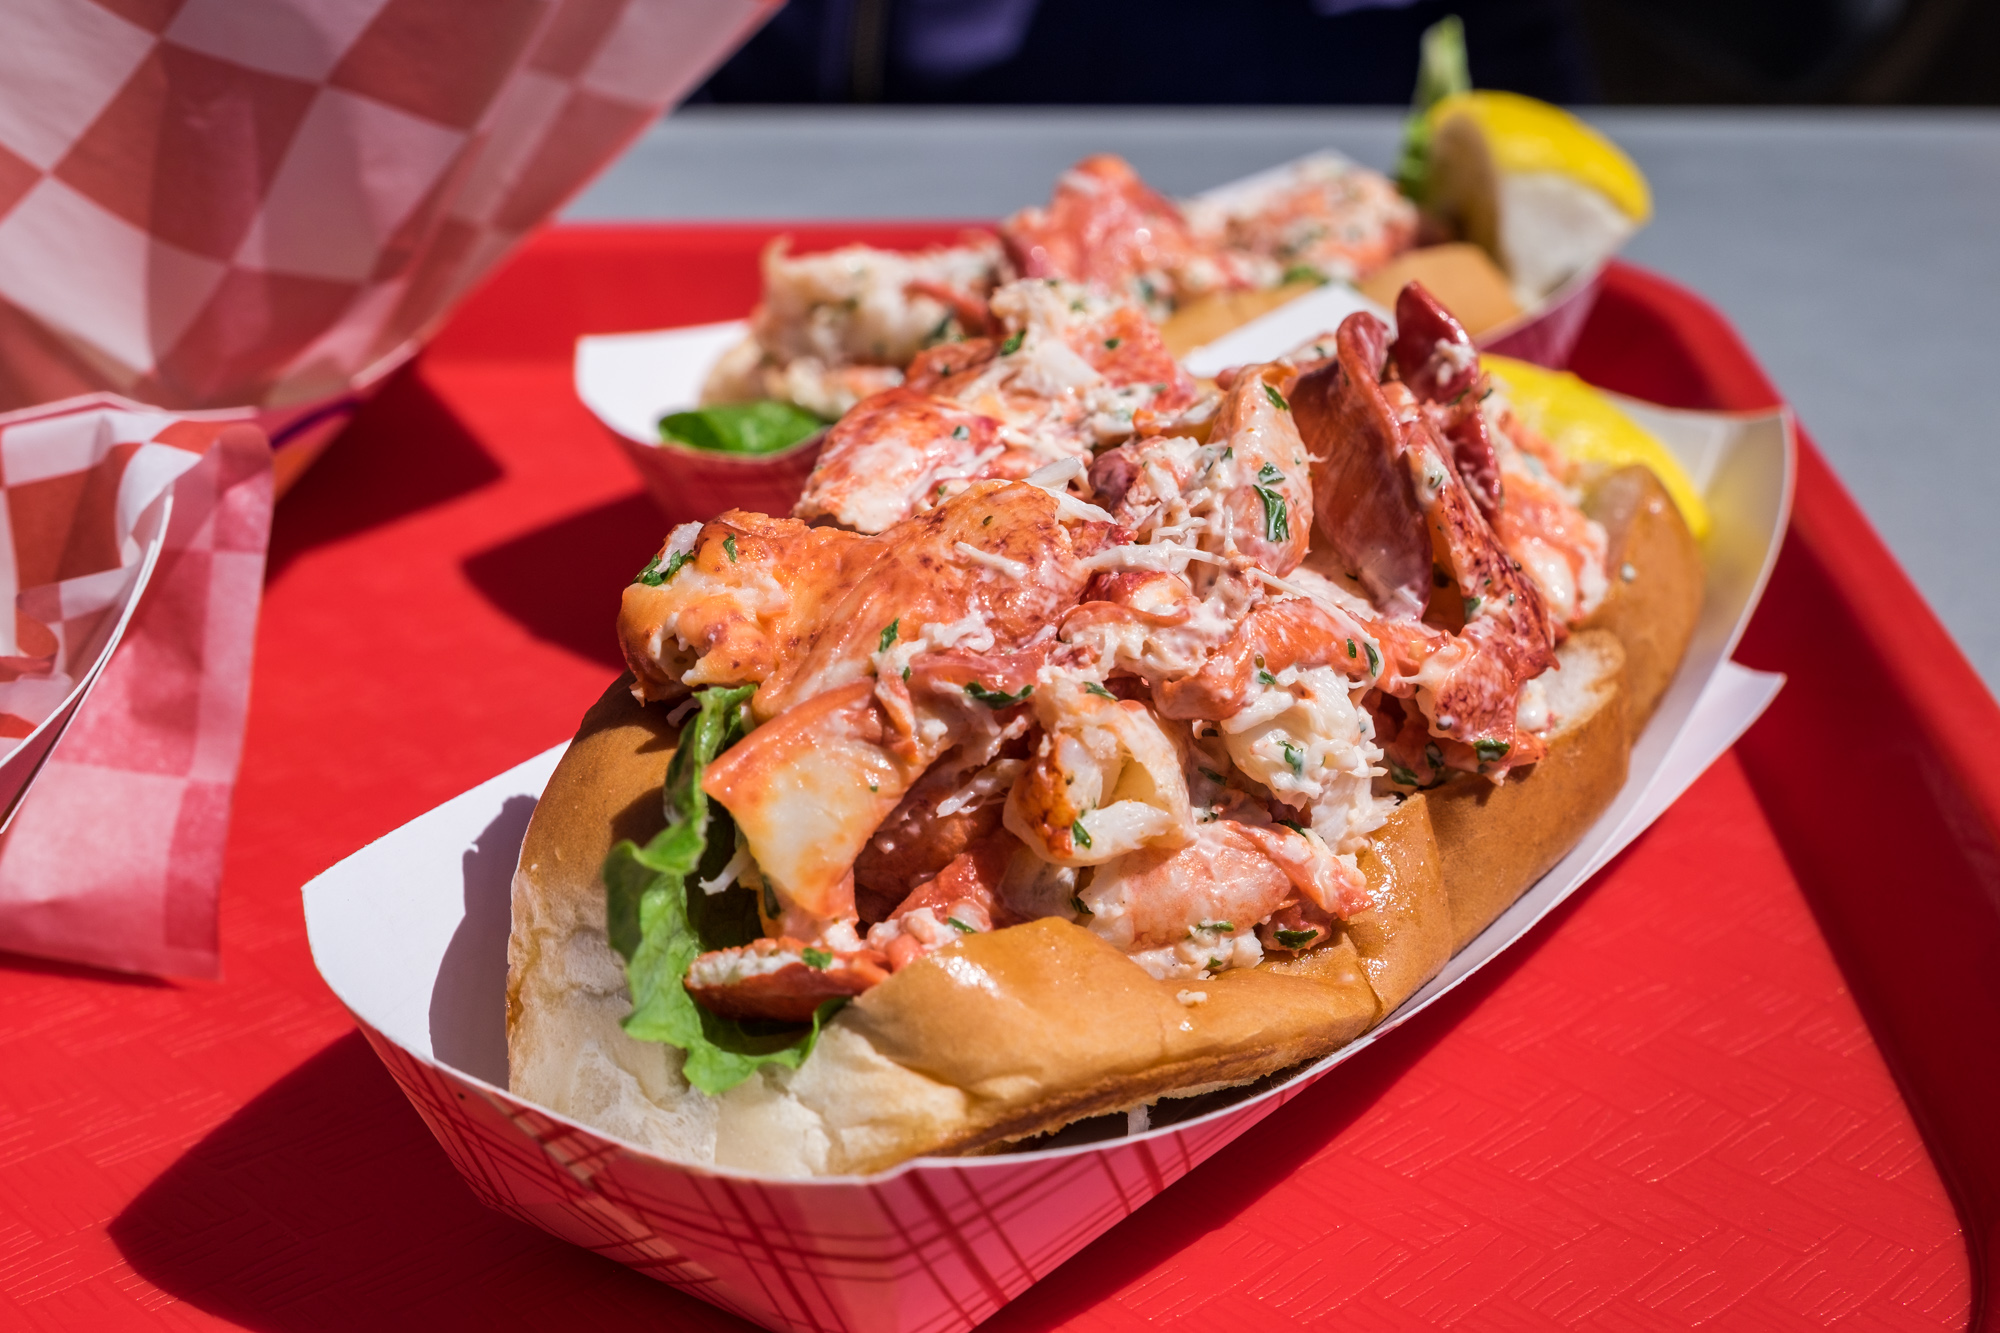 And here is the famous lobster rolls.....so good!